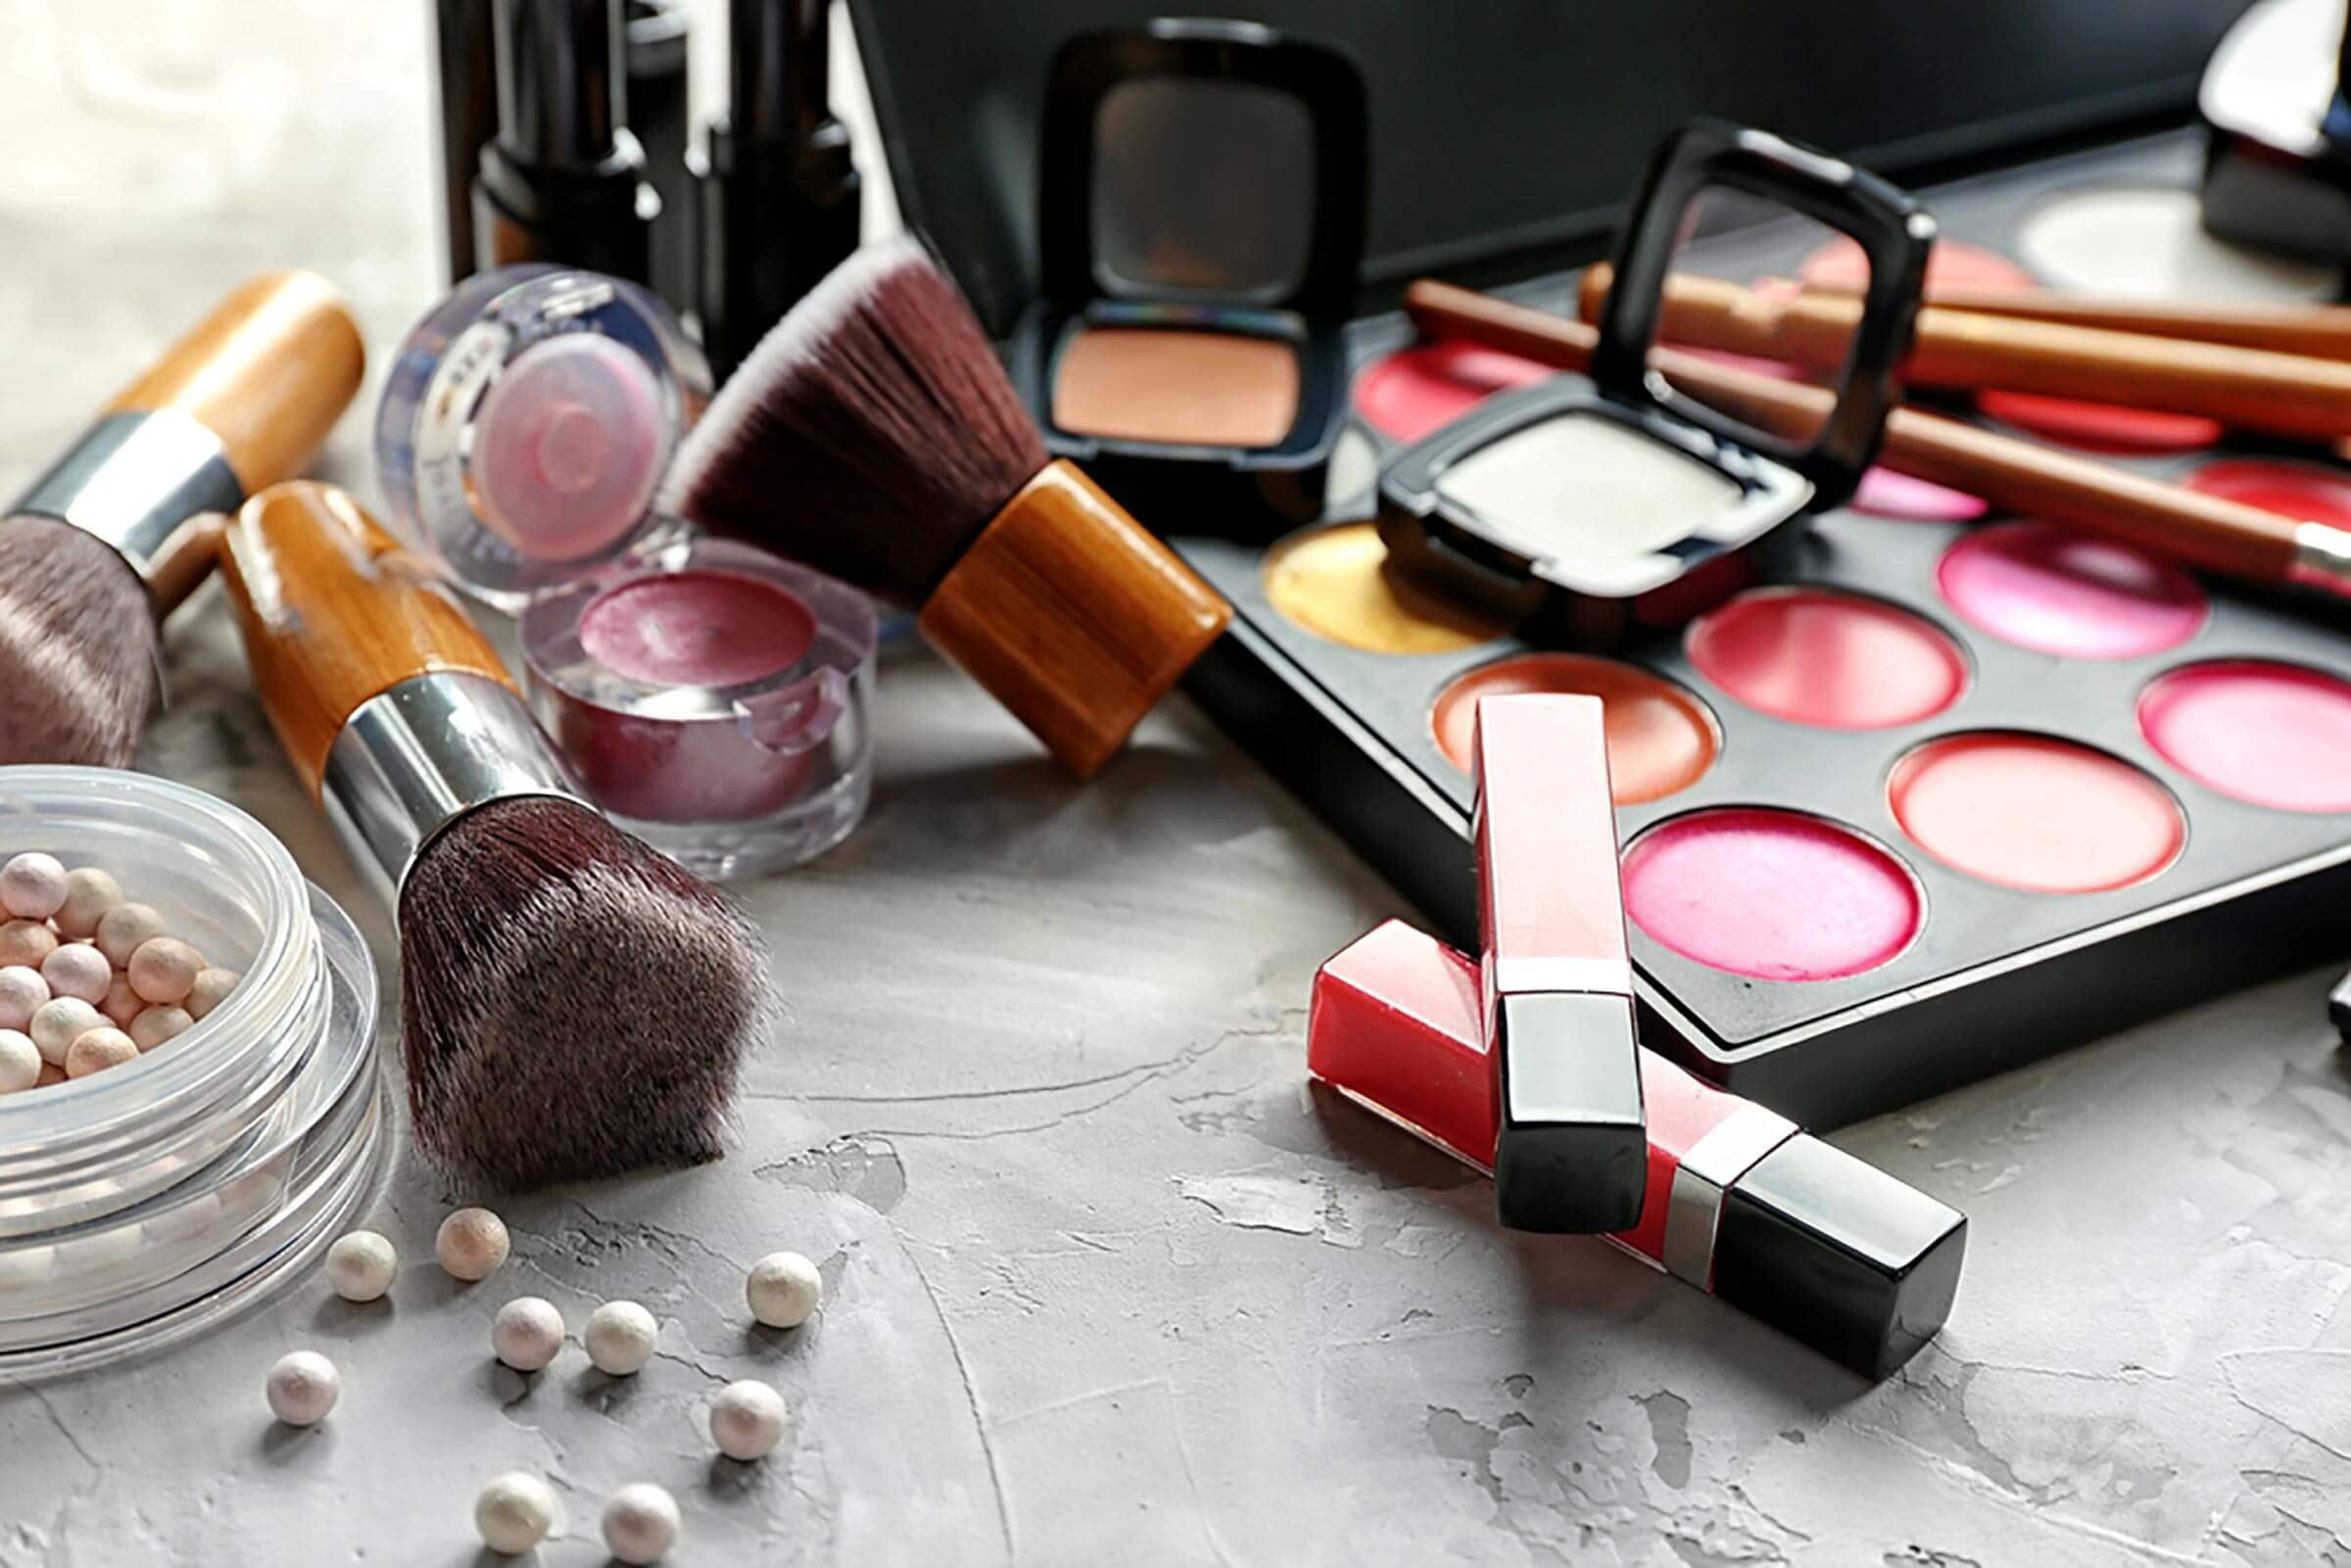 56a8fc4618320 9 Surprising Things You Don t Realize Are Causing Dark Under Eye Circles